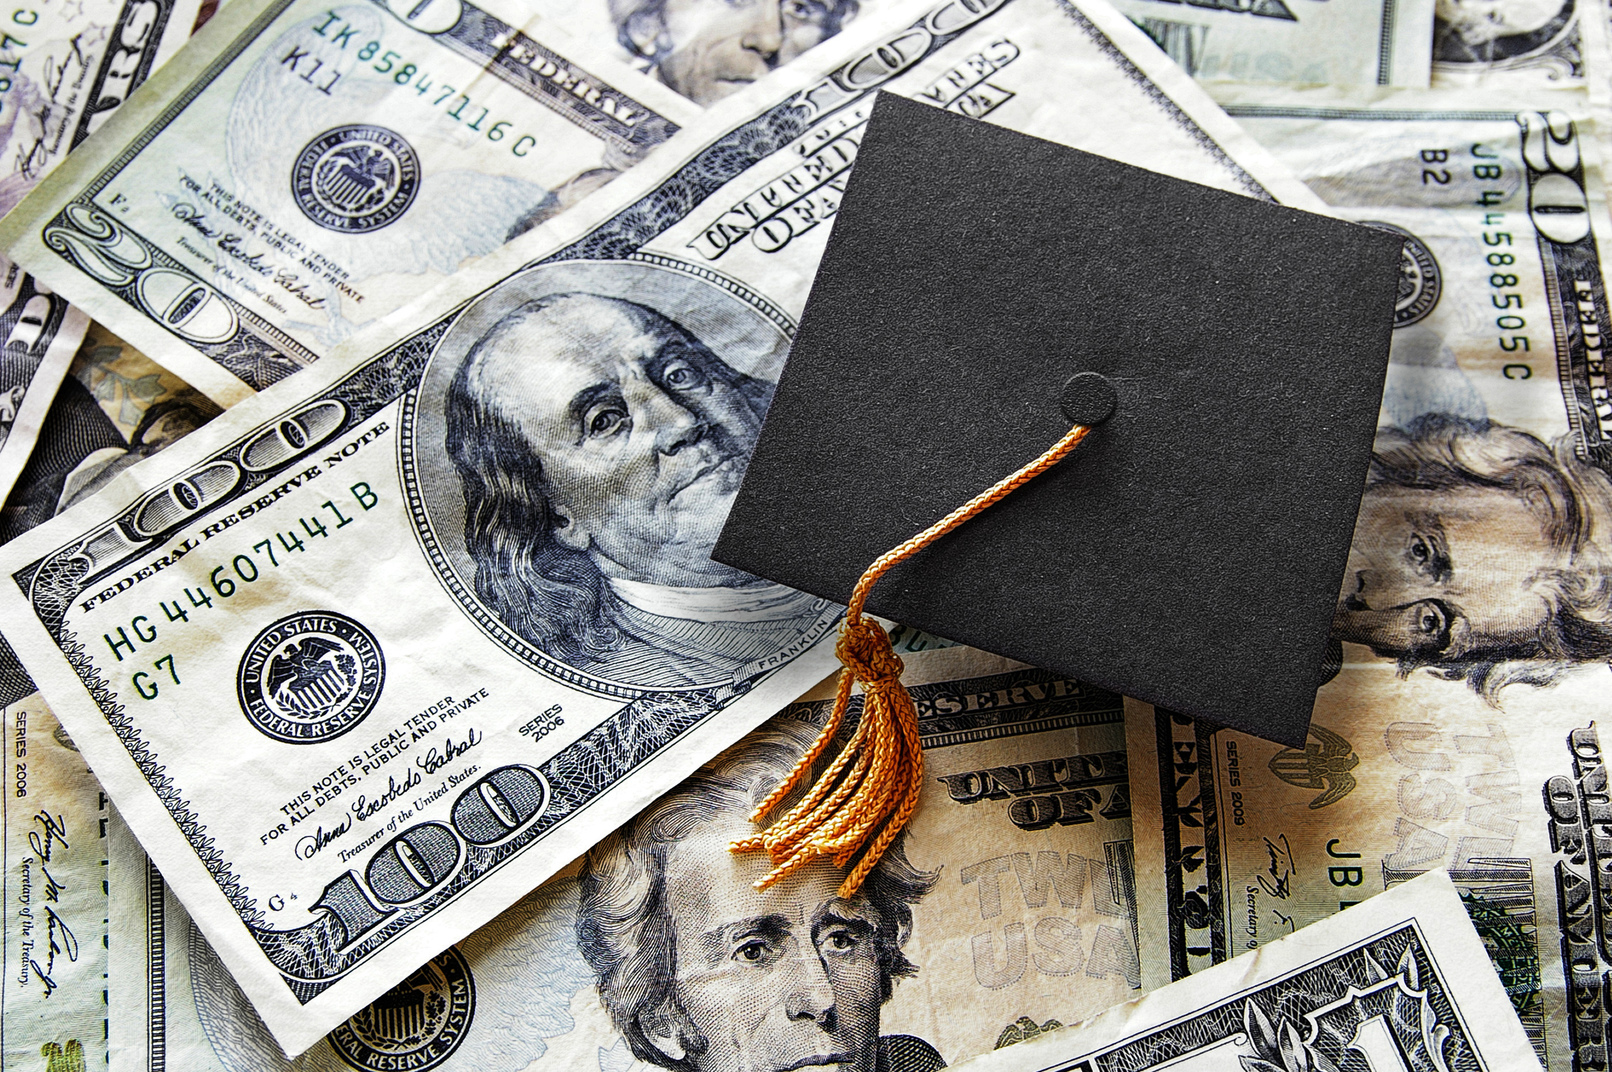 Student Loan Servicer Navient Corp. Sued by California Attorney General Xavier Becerra